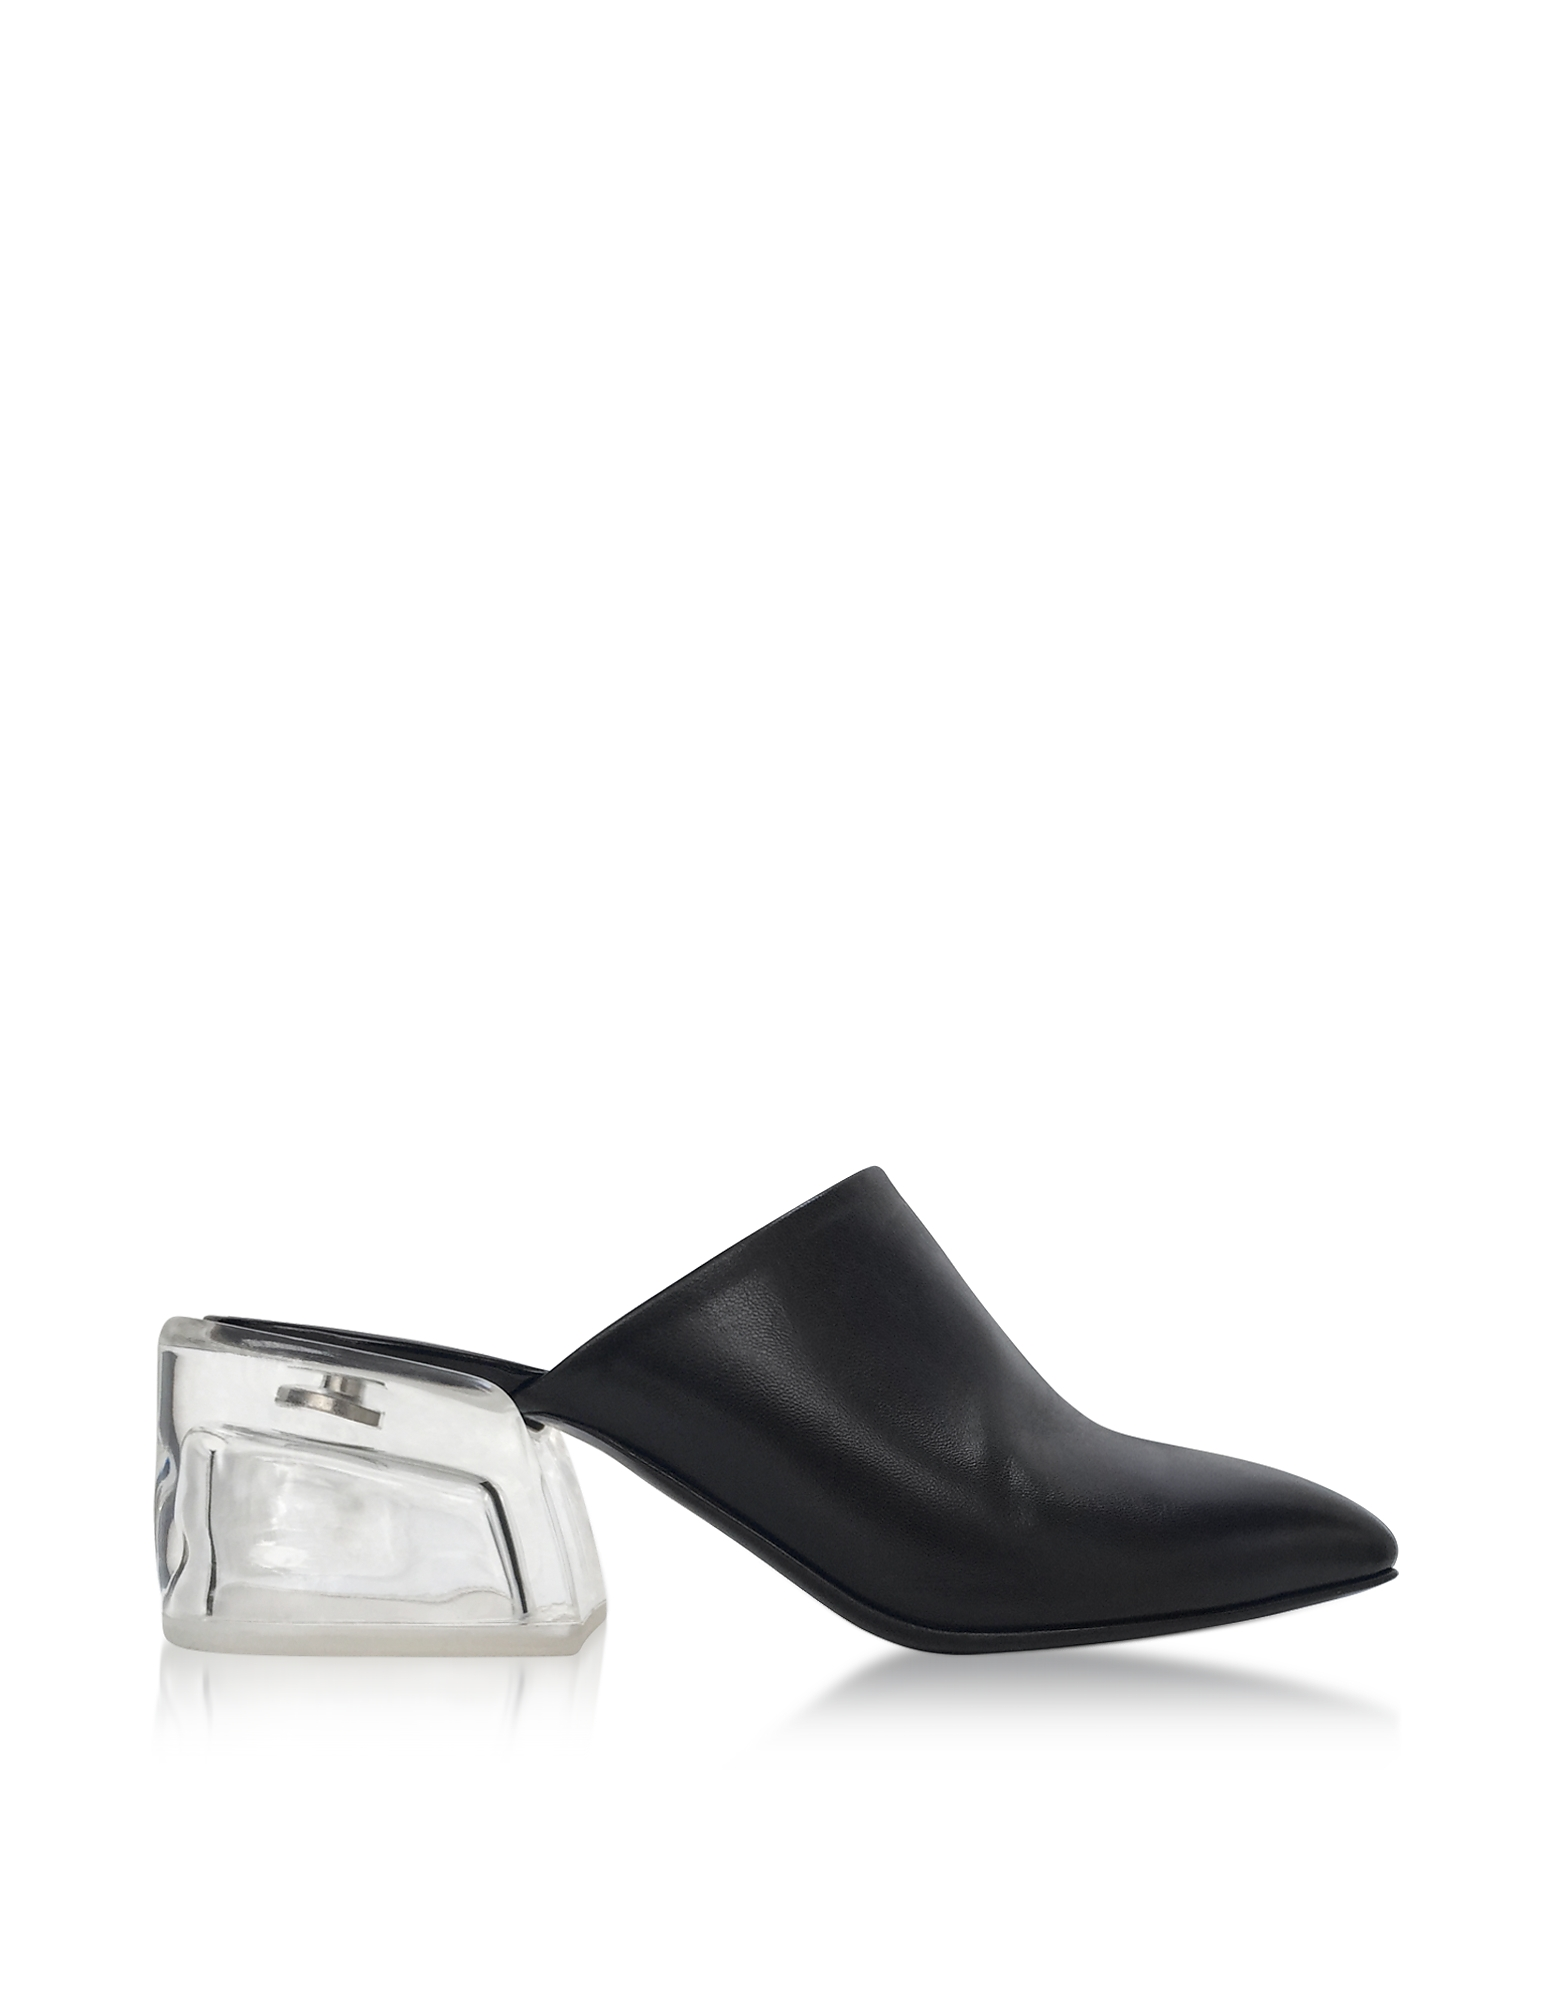 3.1 Phillip Lim Shoes, Closed Toe Black Leather Mule w/Plexi Heel